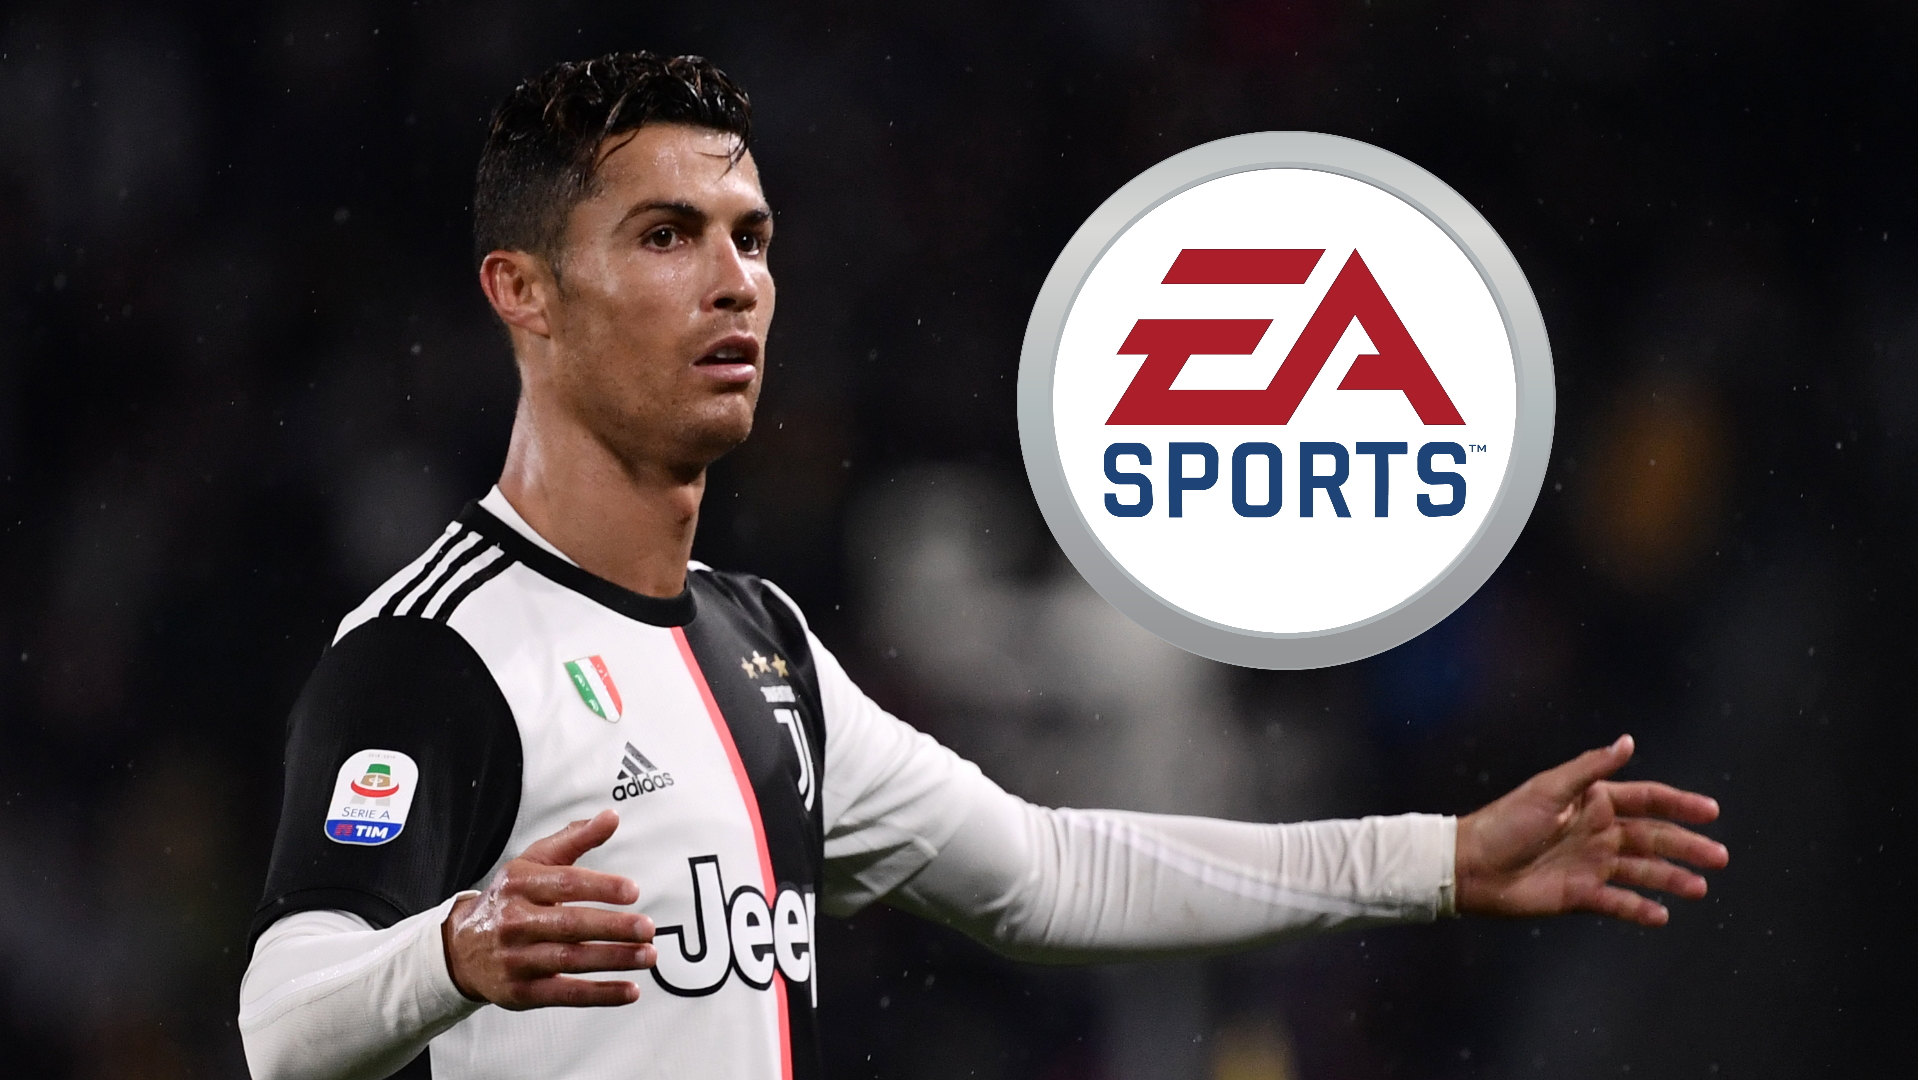 fifa 20 loses juventus naming rights to pes 2020 with serie a giants to be called piemonte calcio goal com fifa 20 loses juventus naming rights to